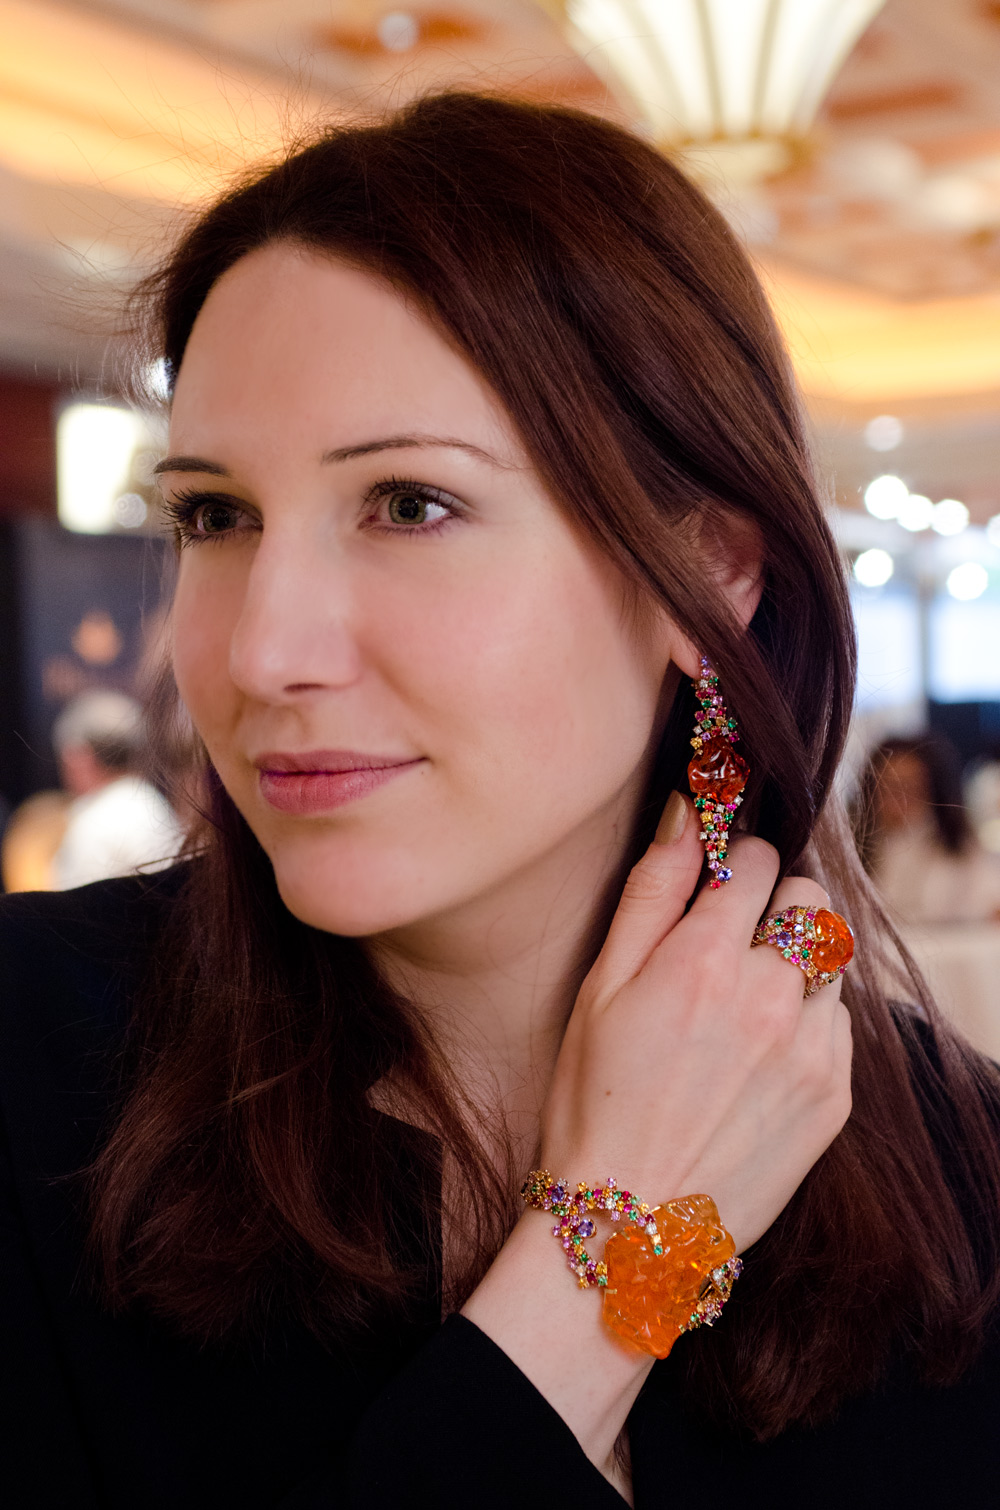 Katerina Perez wearing Mauro Felter Path of Flowers jewellery set with fire opals